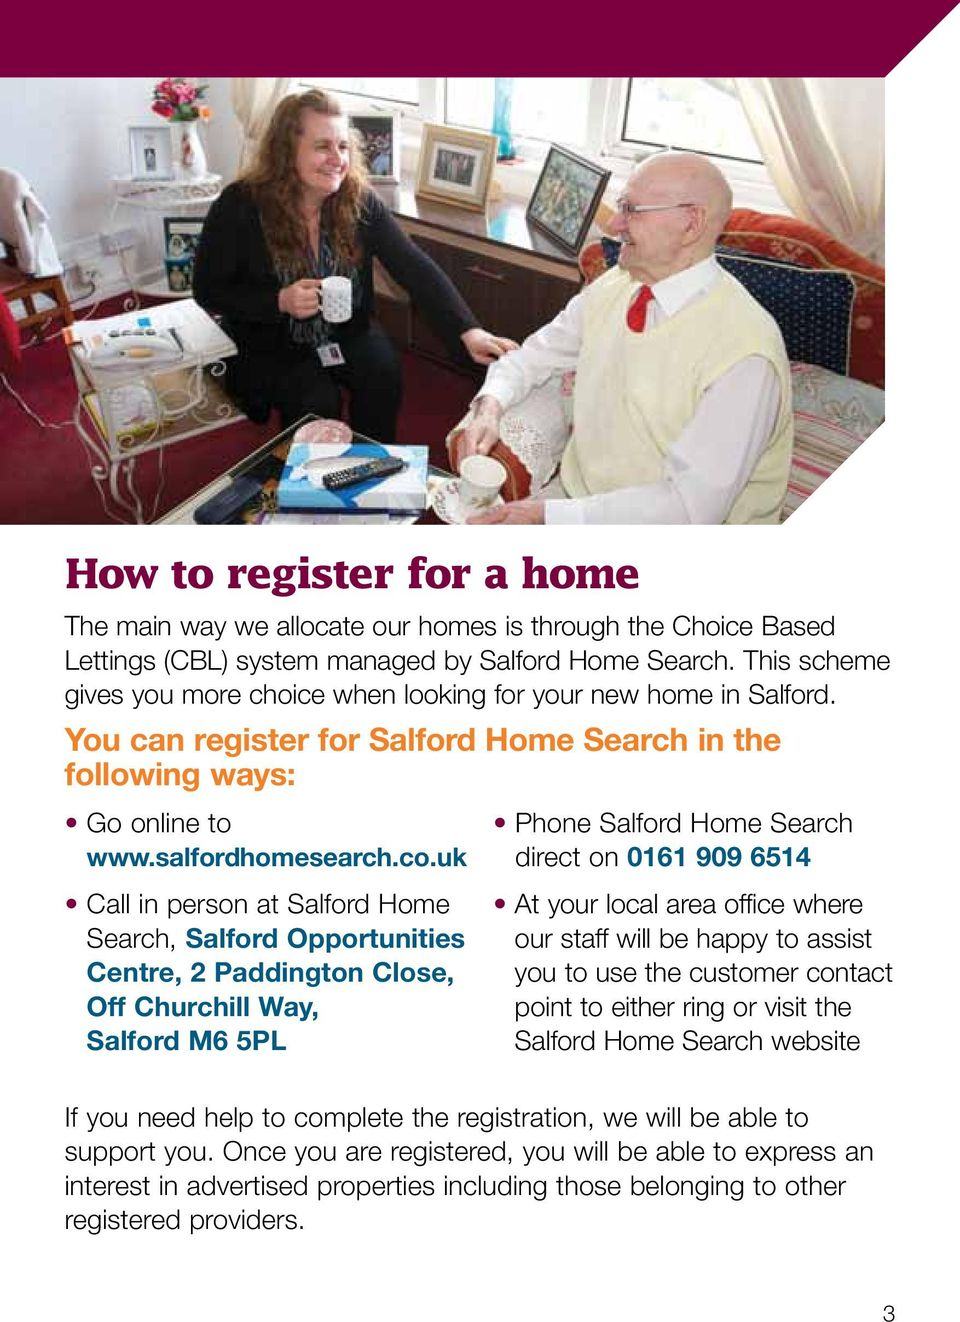 uk Call in person at Salford Home Search, Salford Opportunities Centre, 2 Paddington Close, Off Churchill Way, Salford M6 5PL Phone Salford Home Search direct on 0161 909 6514 At your local area